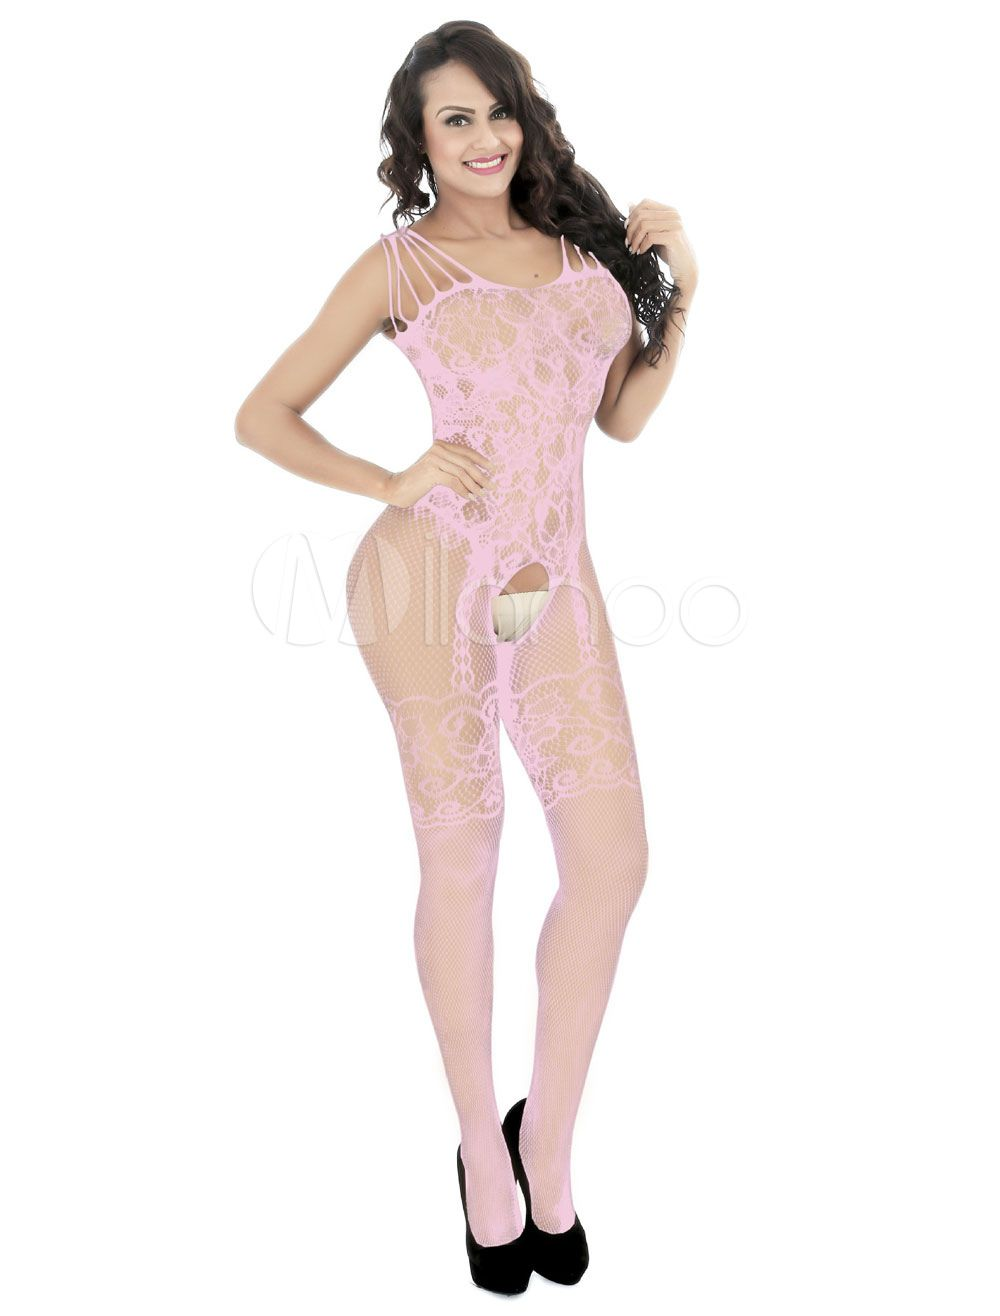 f3339a78c02 White Lace Bodystocking Women Crotchless Strappy Sexy Hosiery  Bodystocking